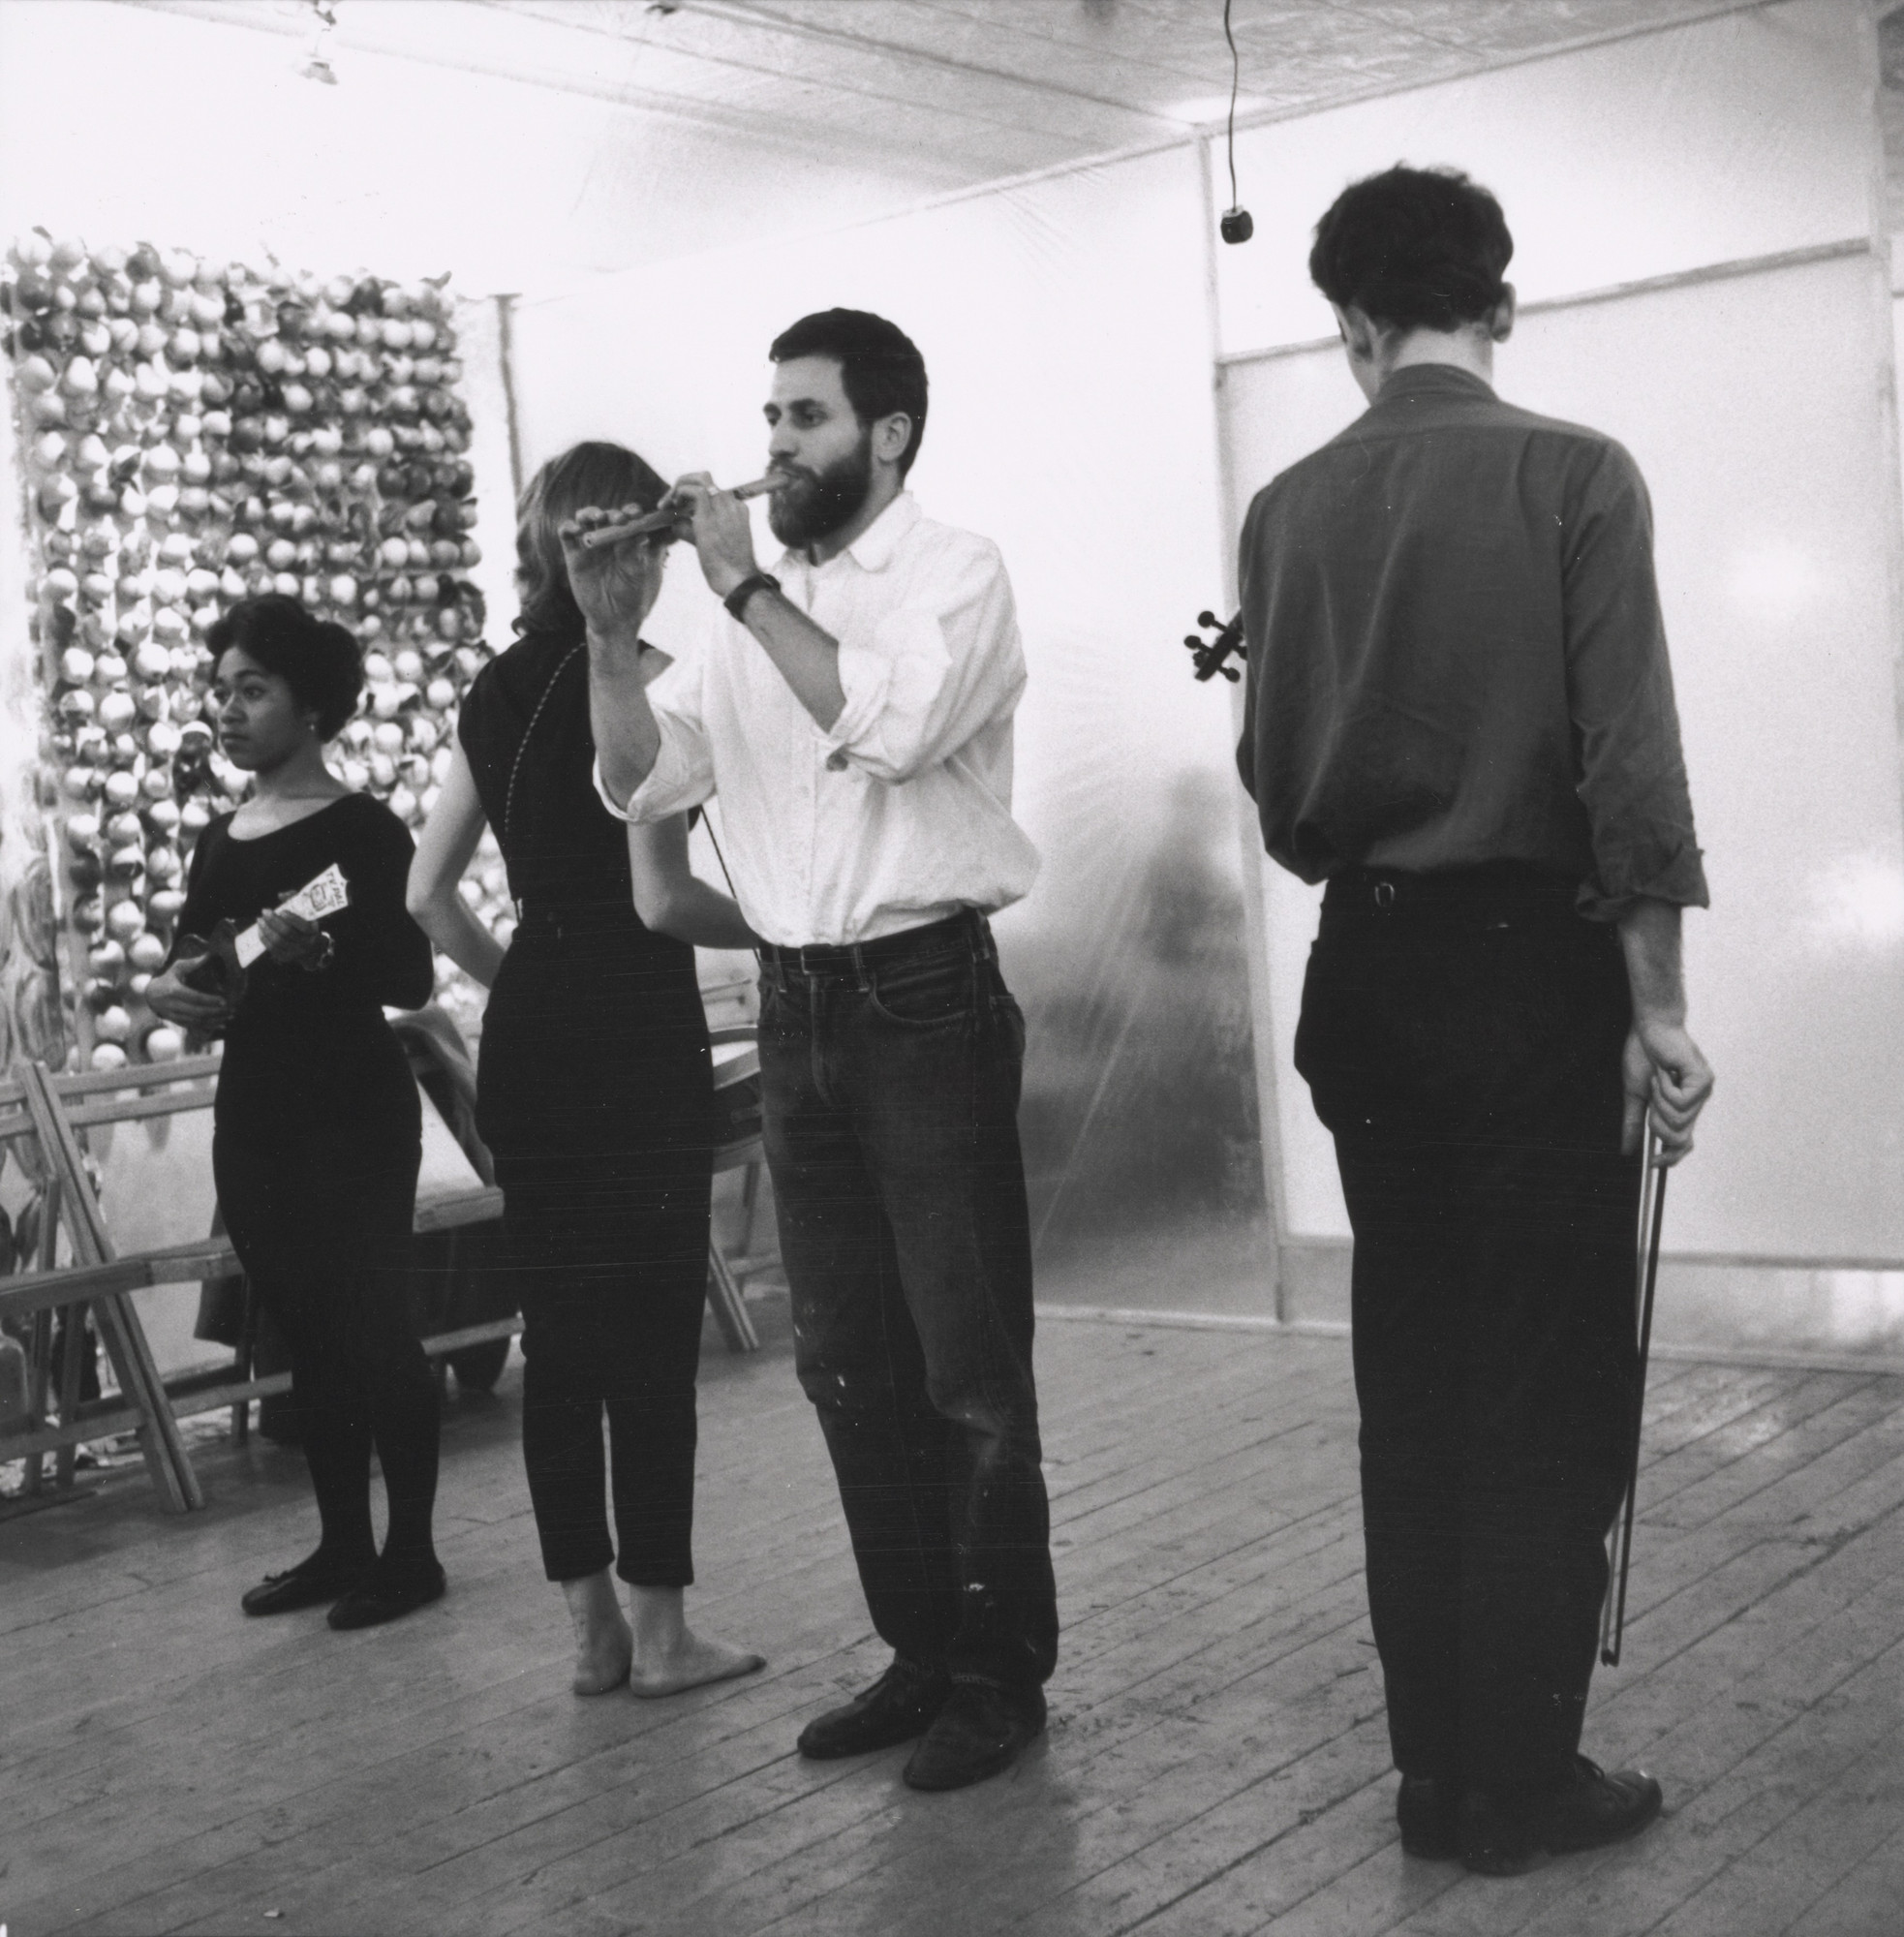 Fred W. McDarrah. 18 Happenings in 6 Parts, Reuben Gallery, New York, October 1959. 1959